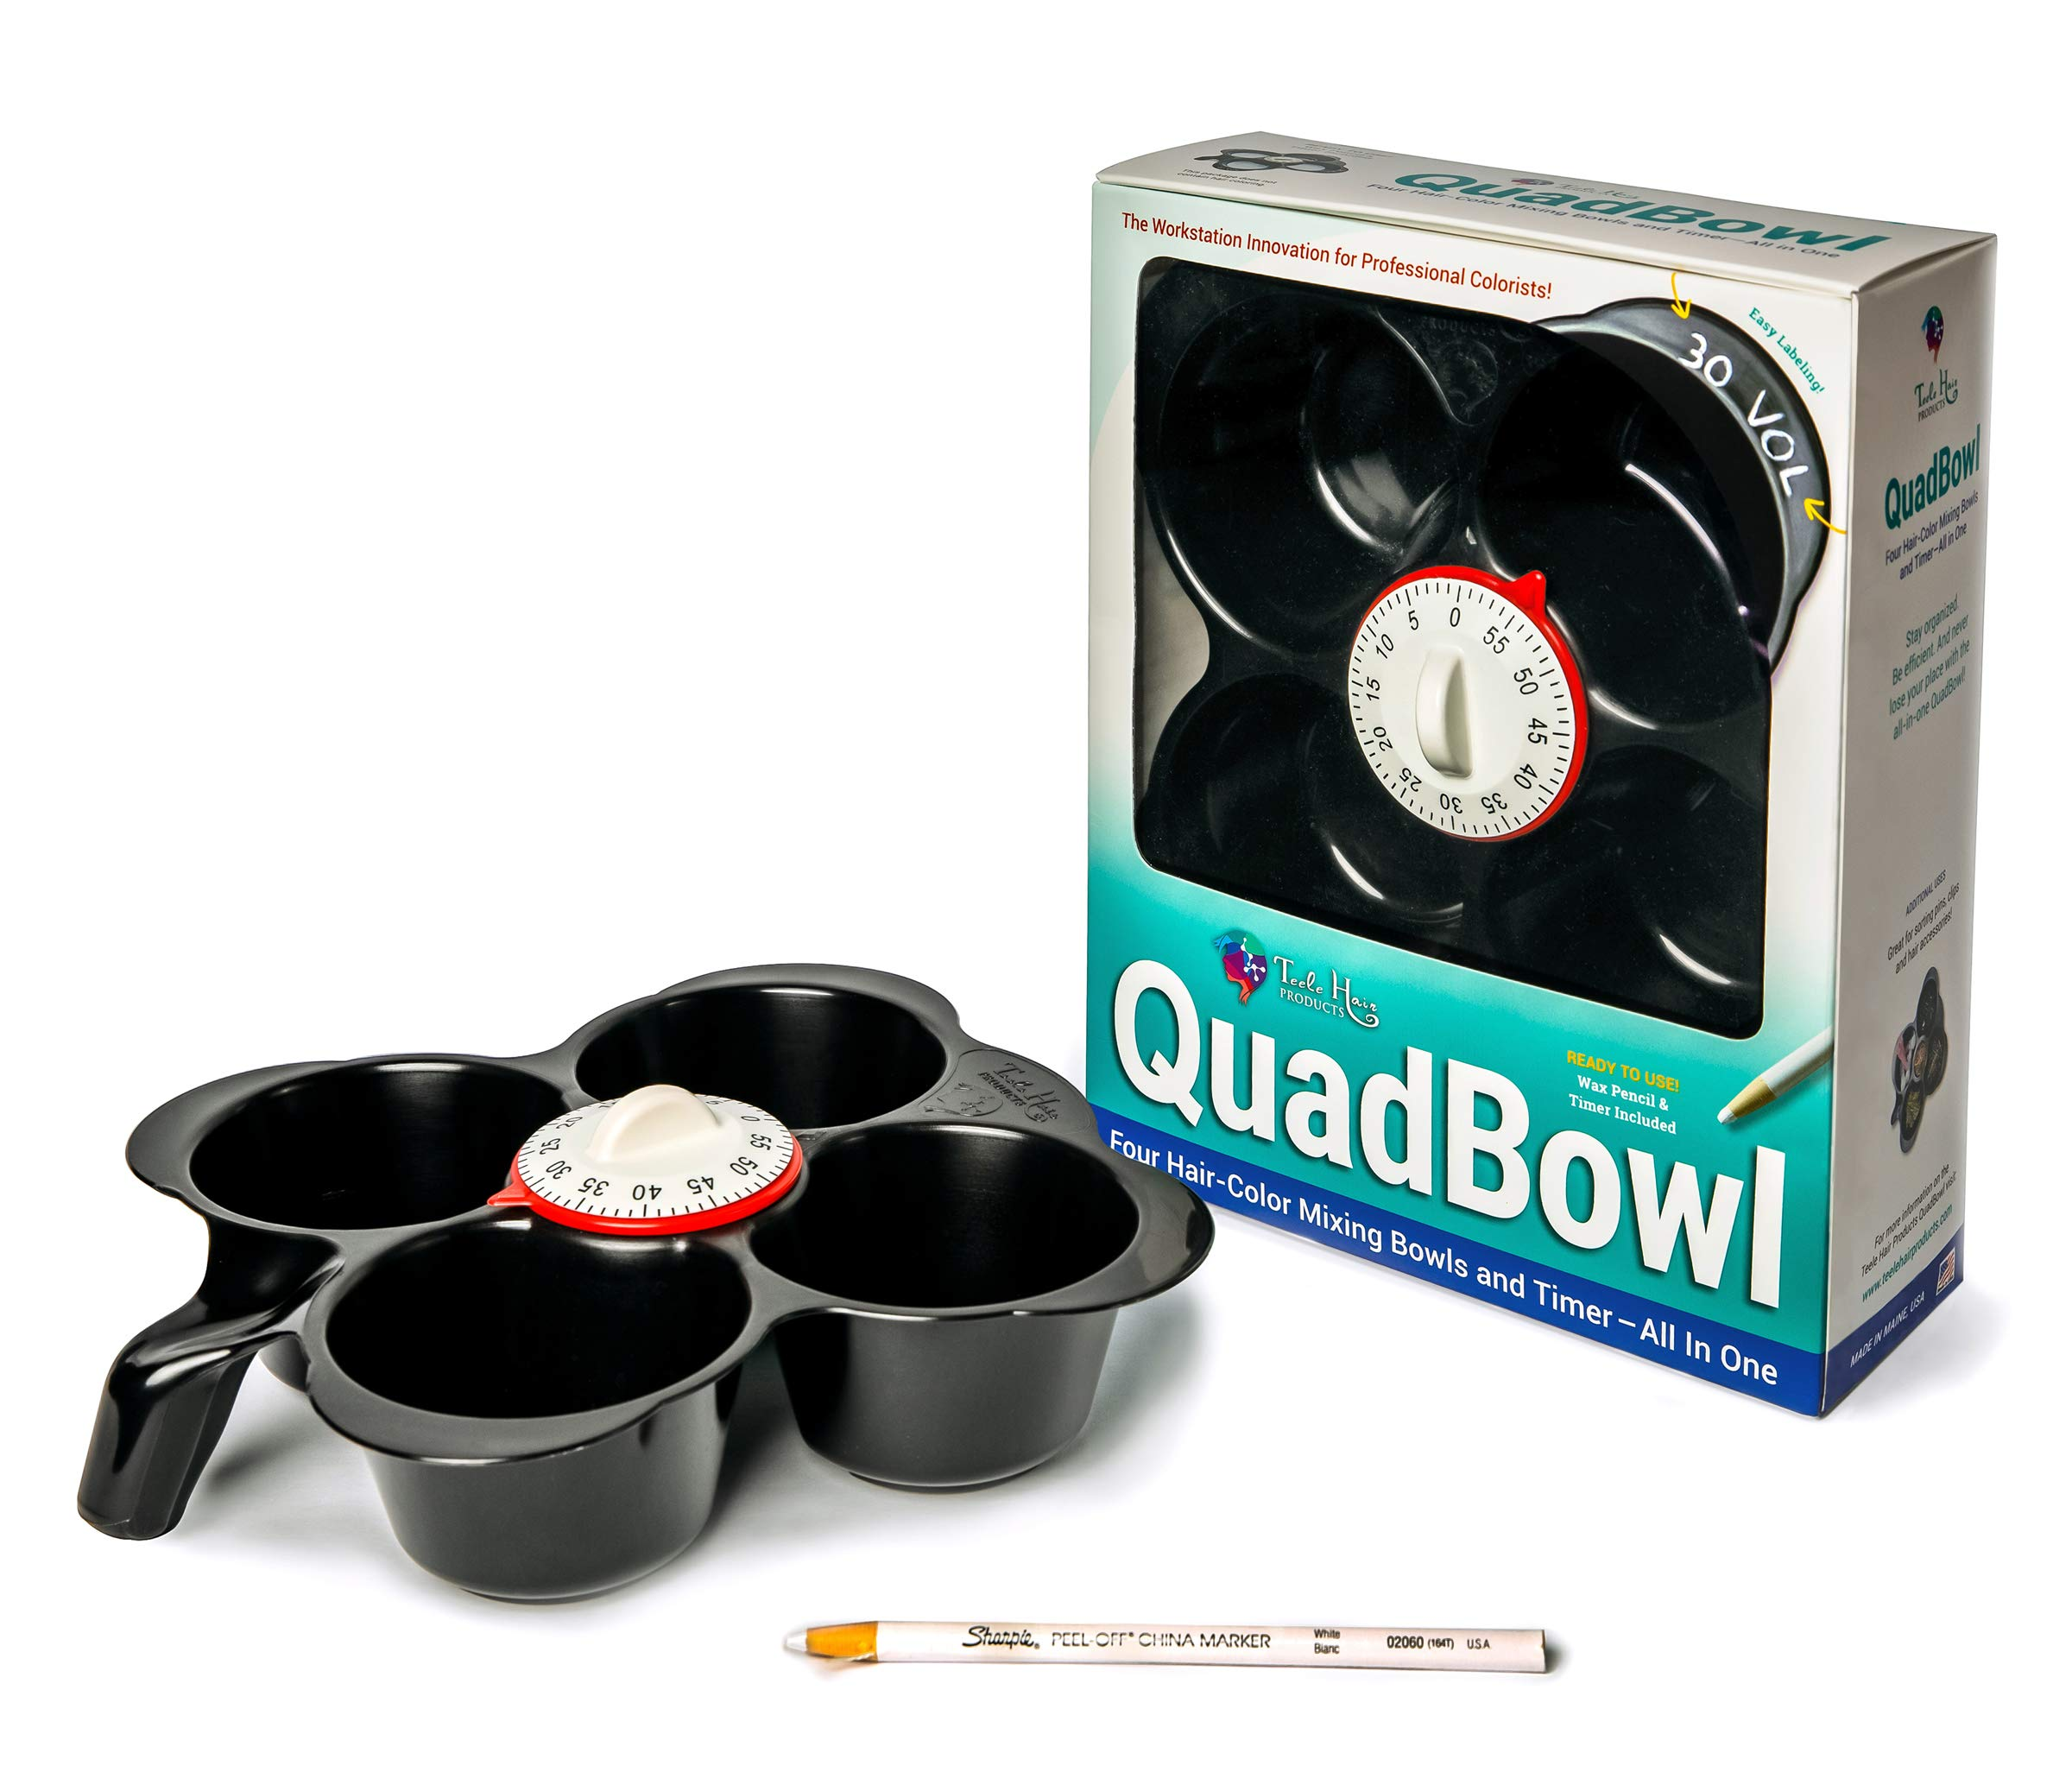 Teele Hair Products QuadBowl: Four Hair-Color Mixing Bowls, Labeling System, and Timer-All in One